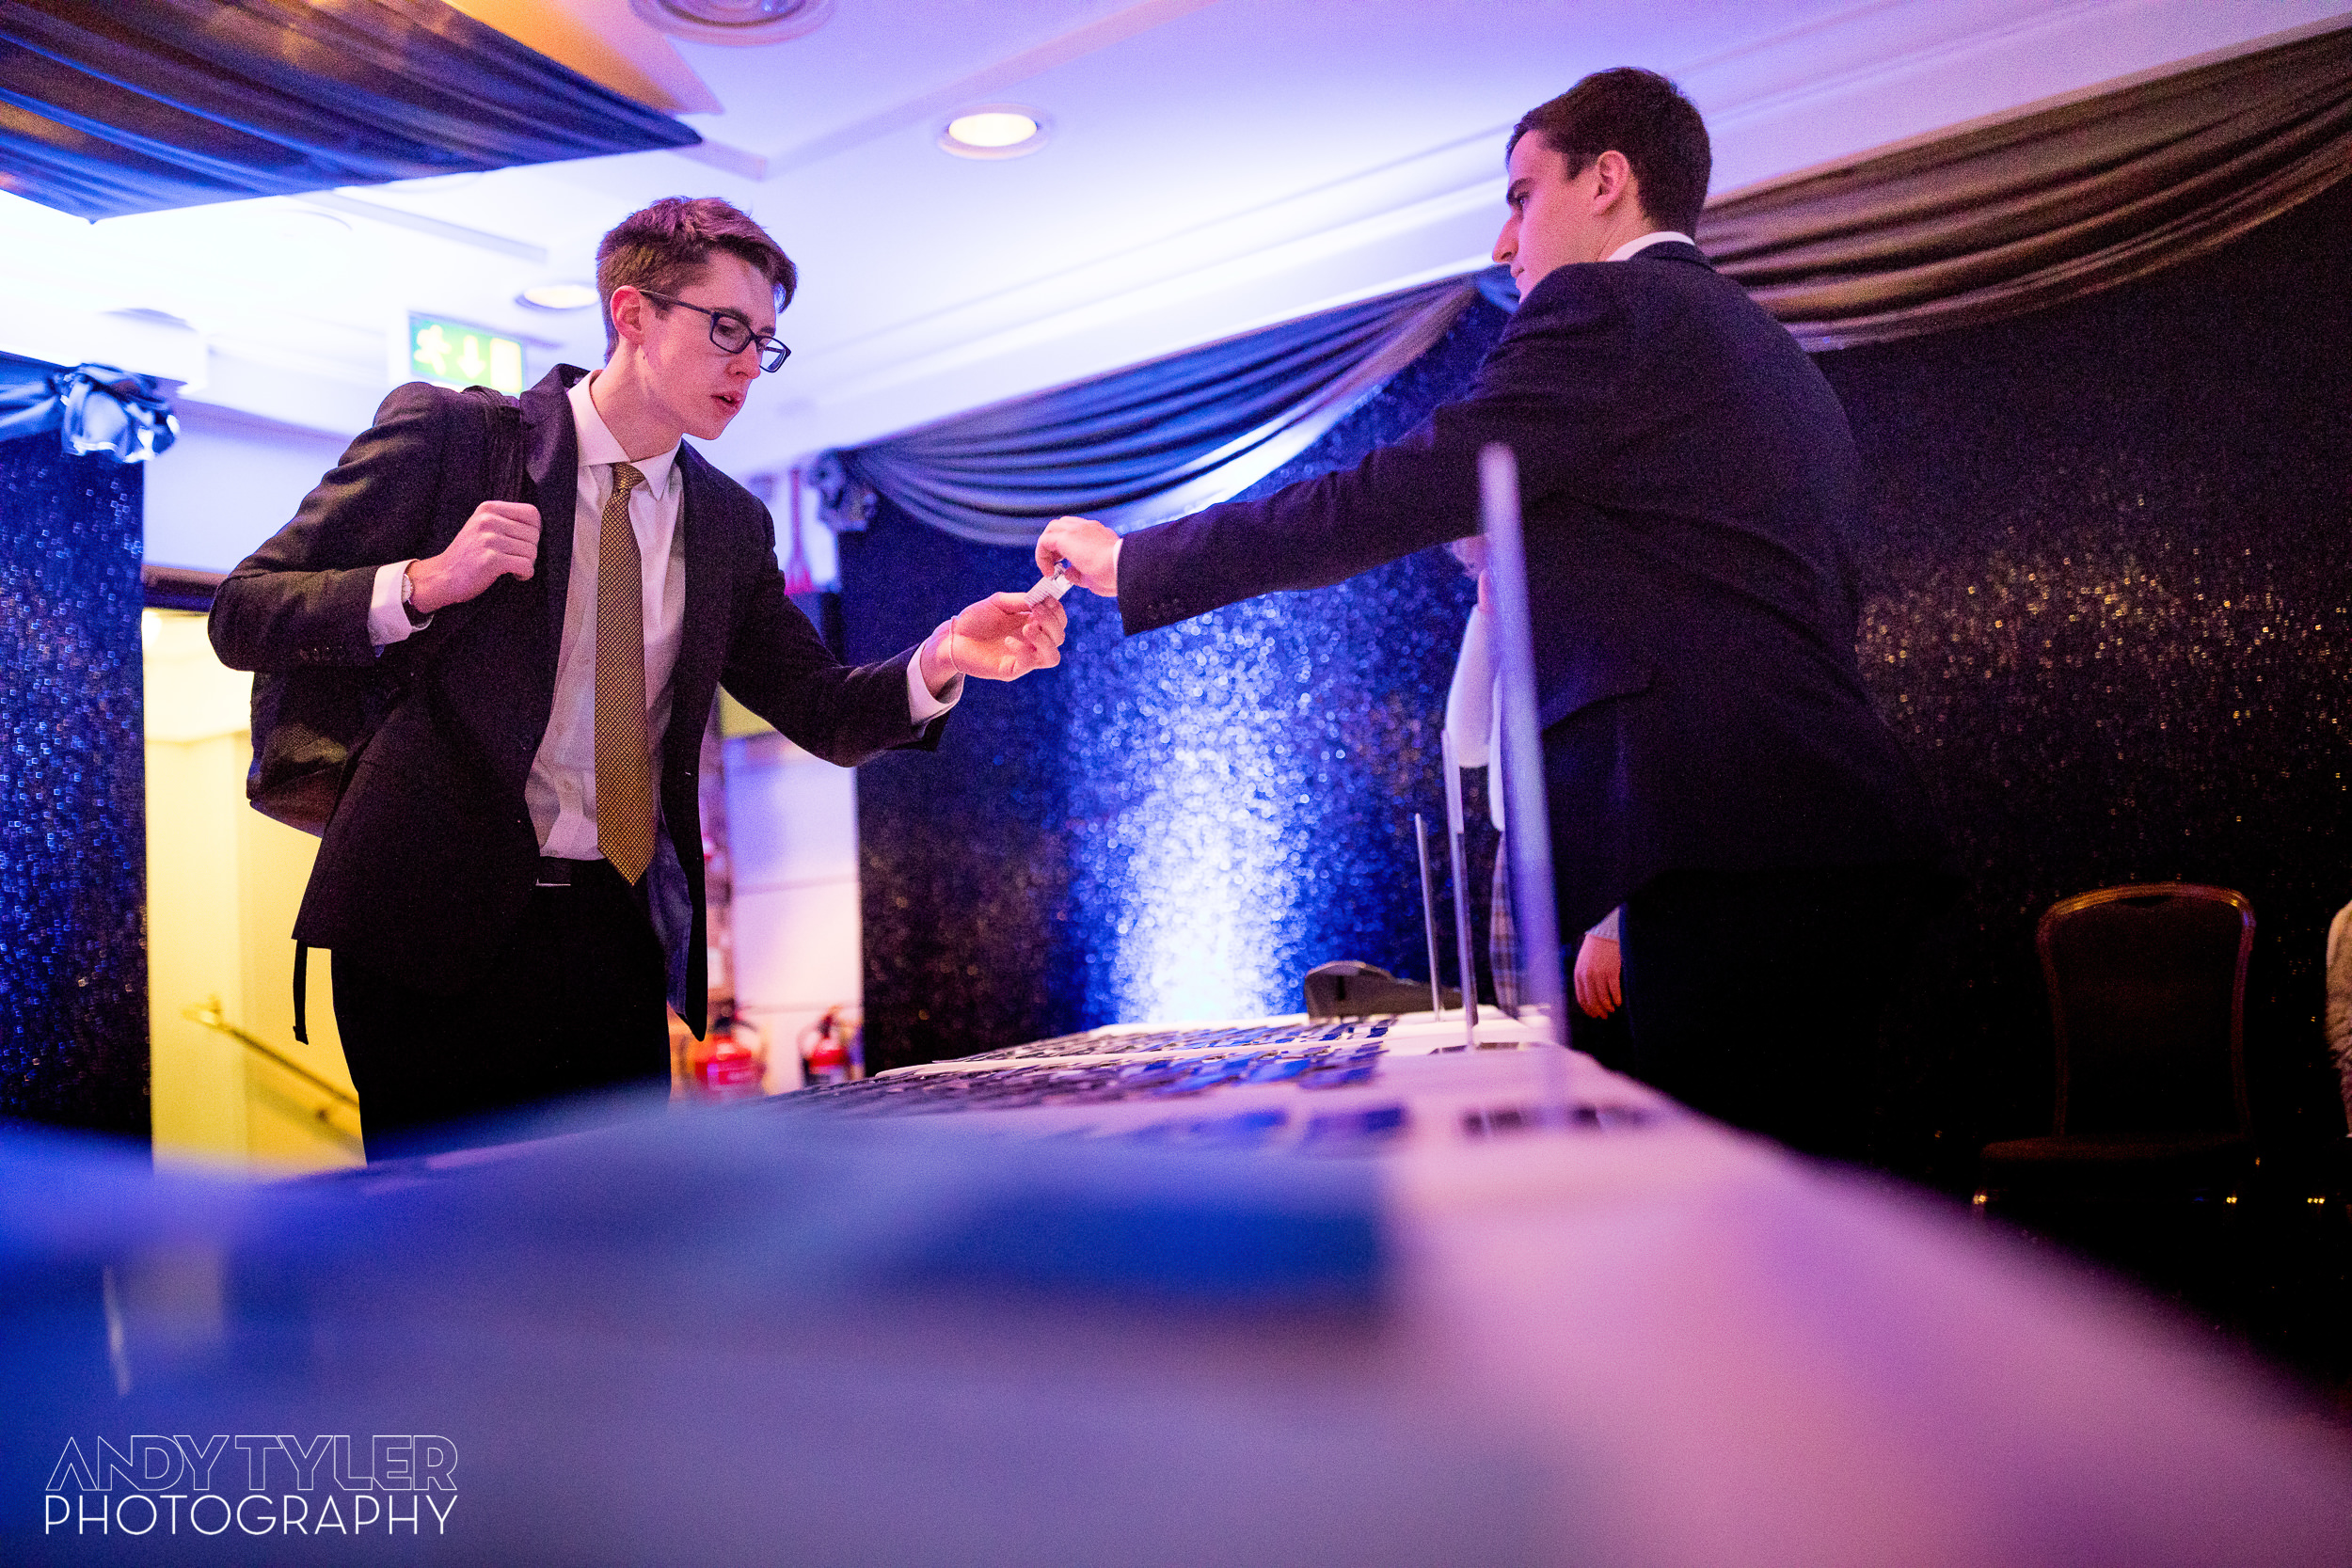 Andy_Tyler_Photography_Business_Conference_001_Andy_Tyler_Photography_036_5DB_0074.jpg